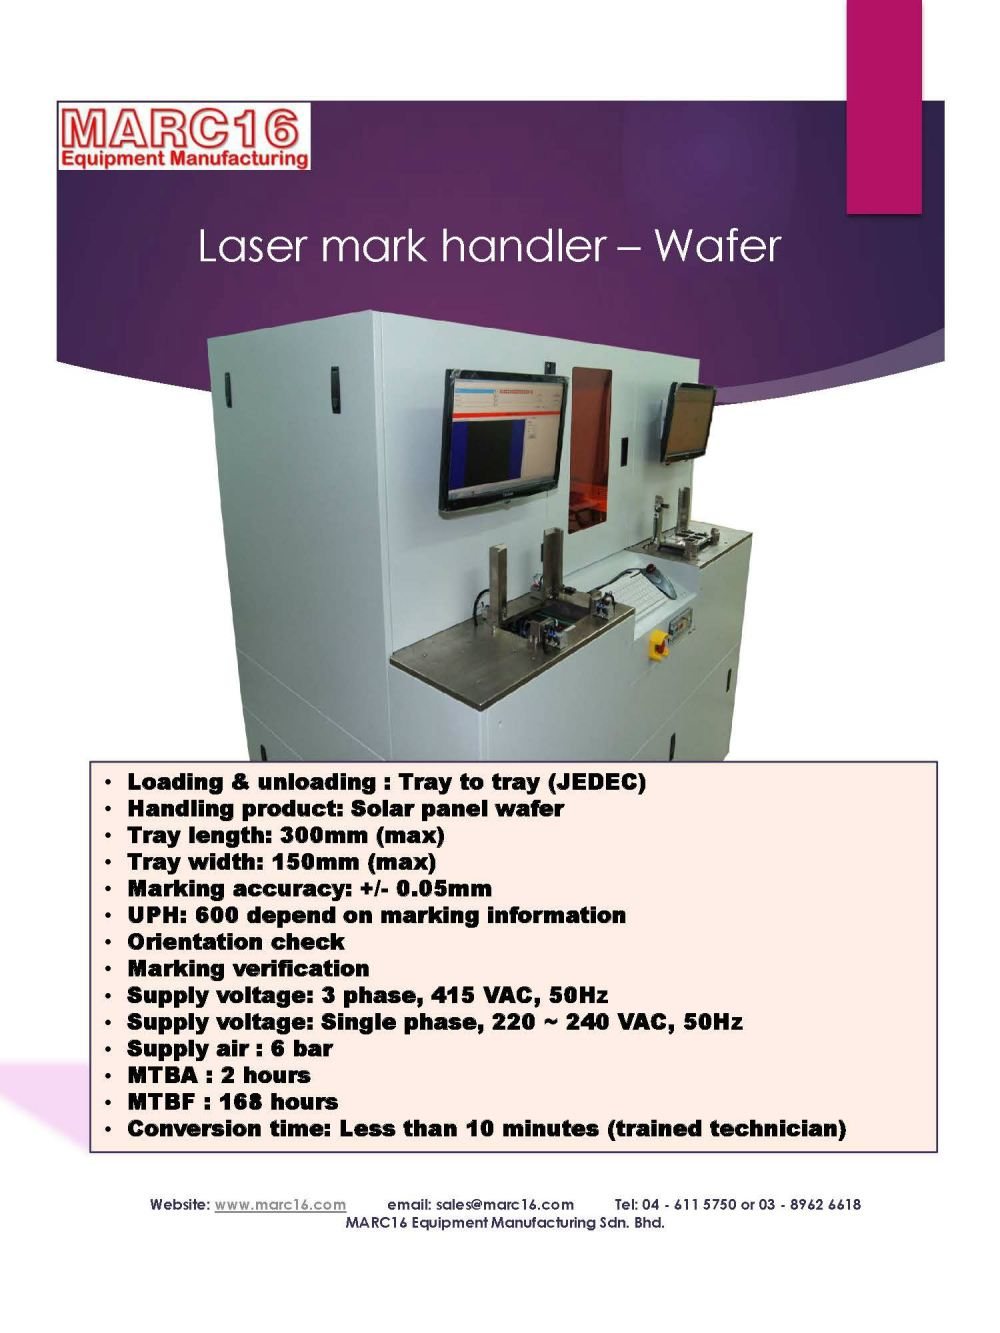 Laser mark handler - Tray to tray